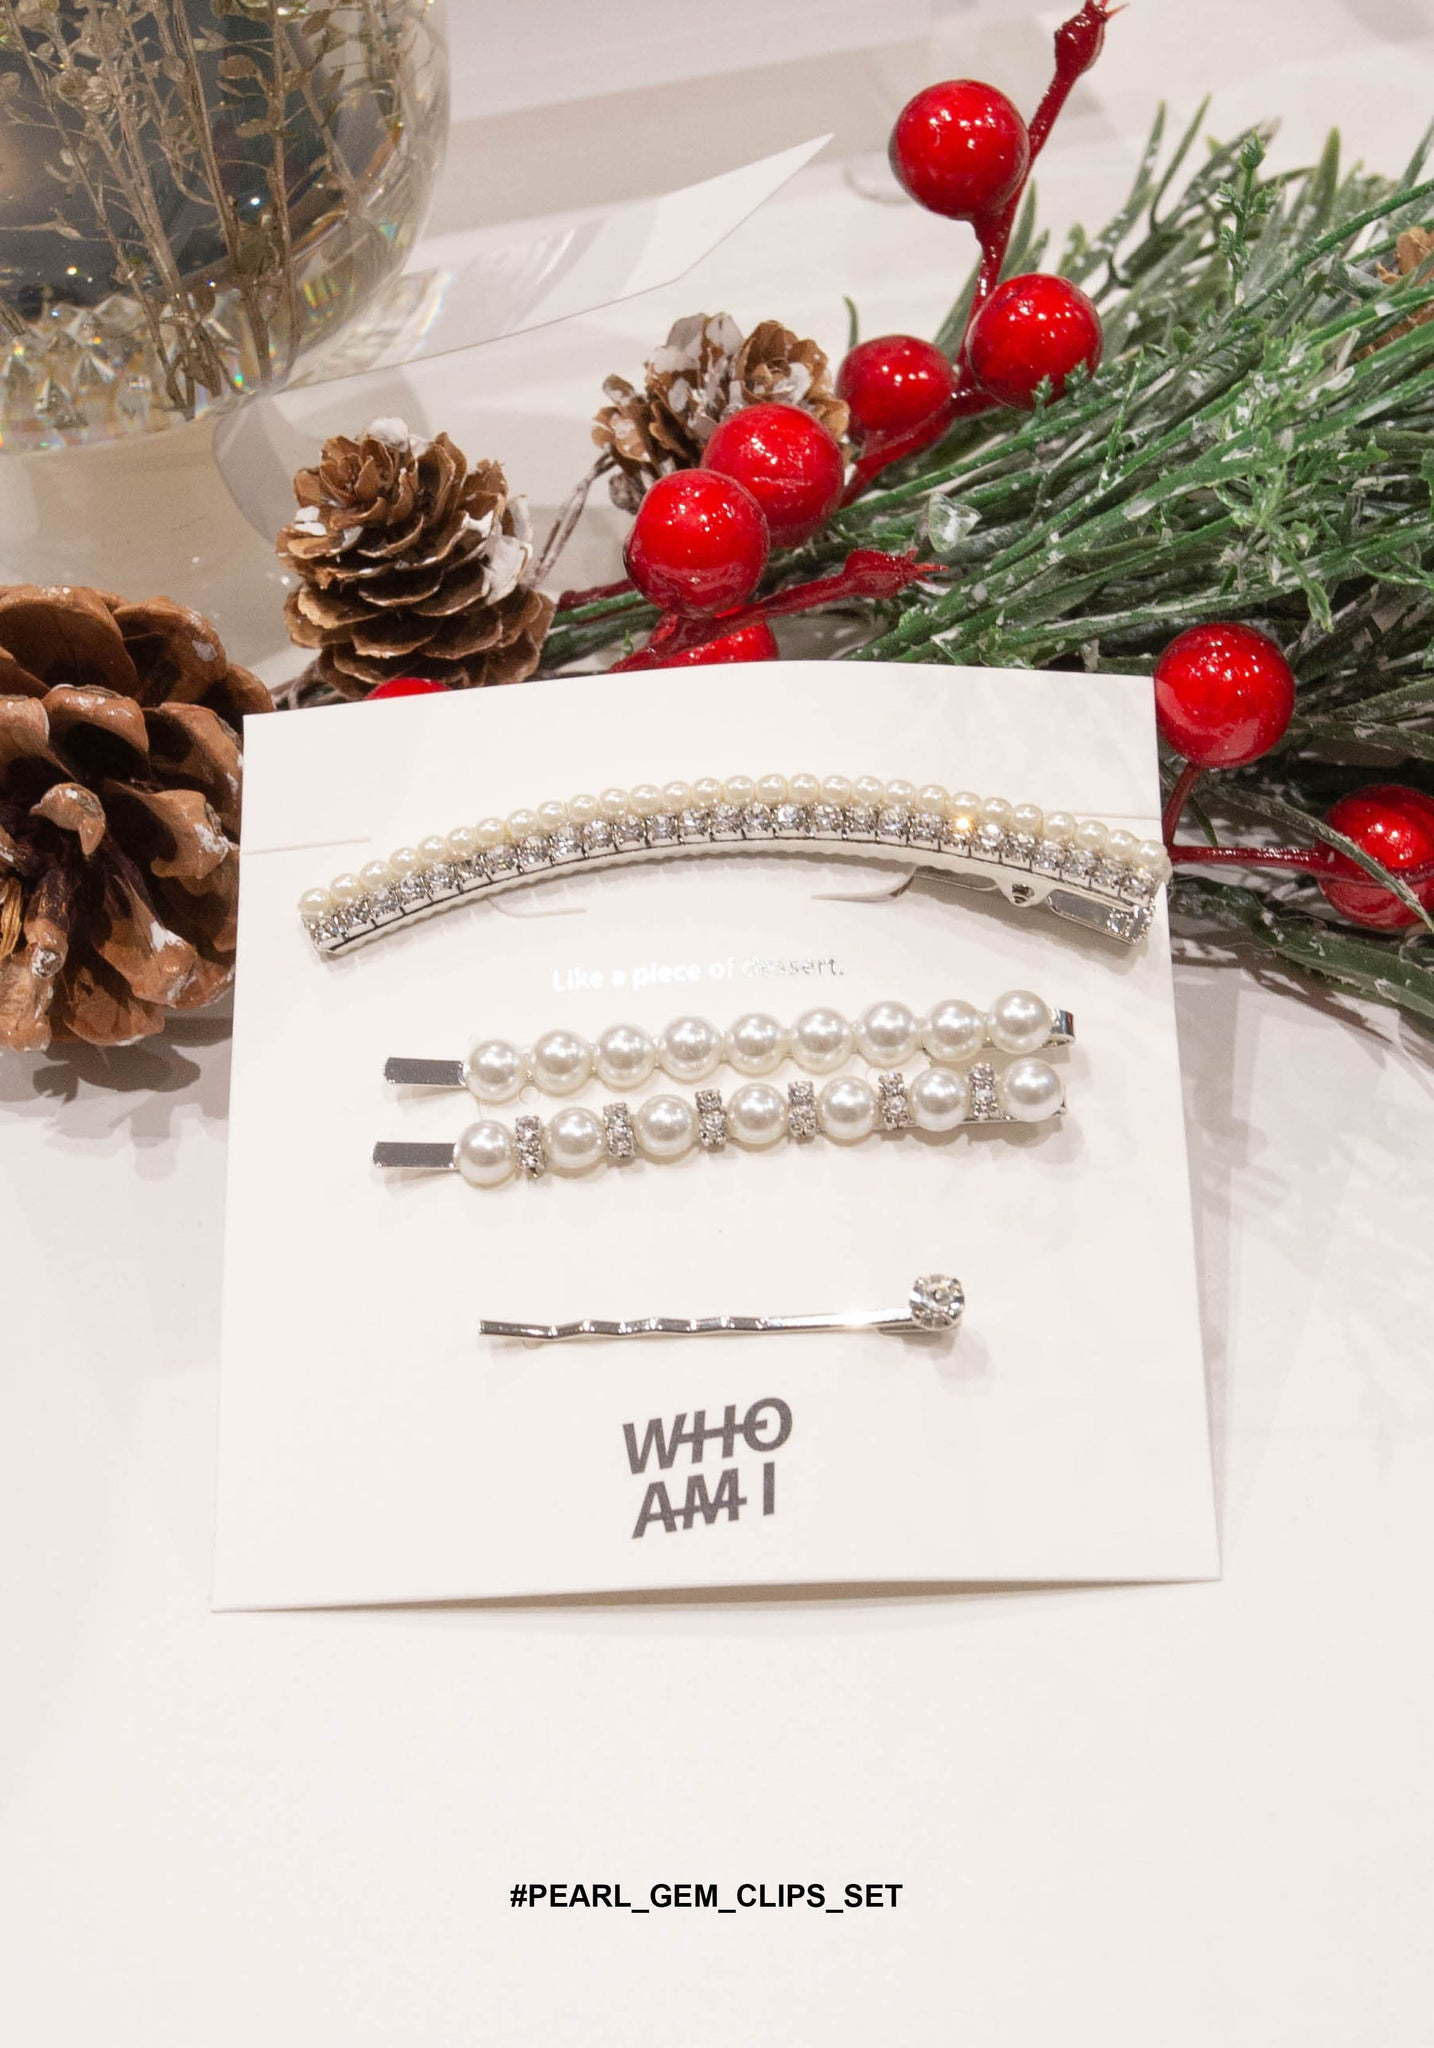 Pearl And Gem Clips Set - whoami